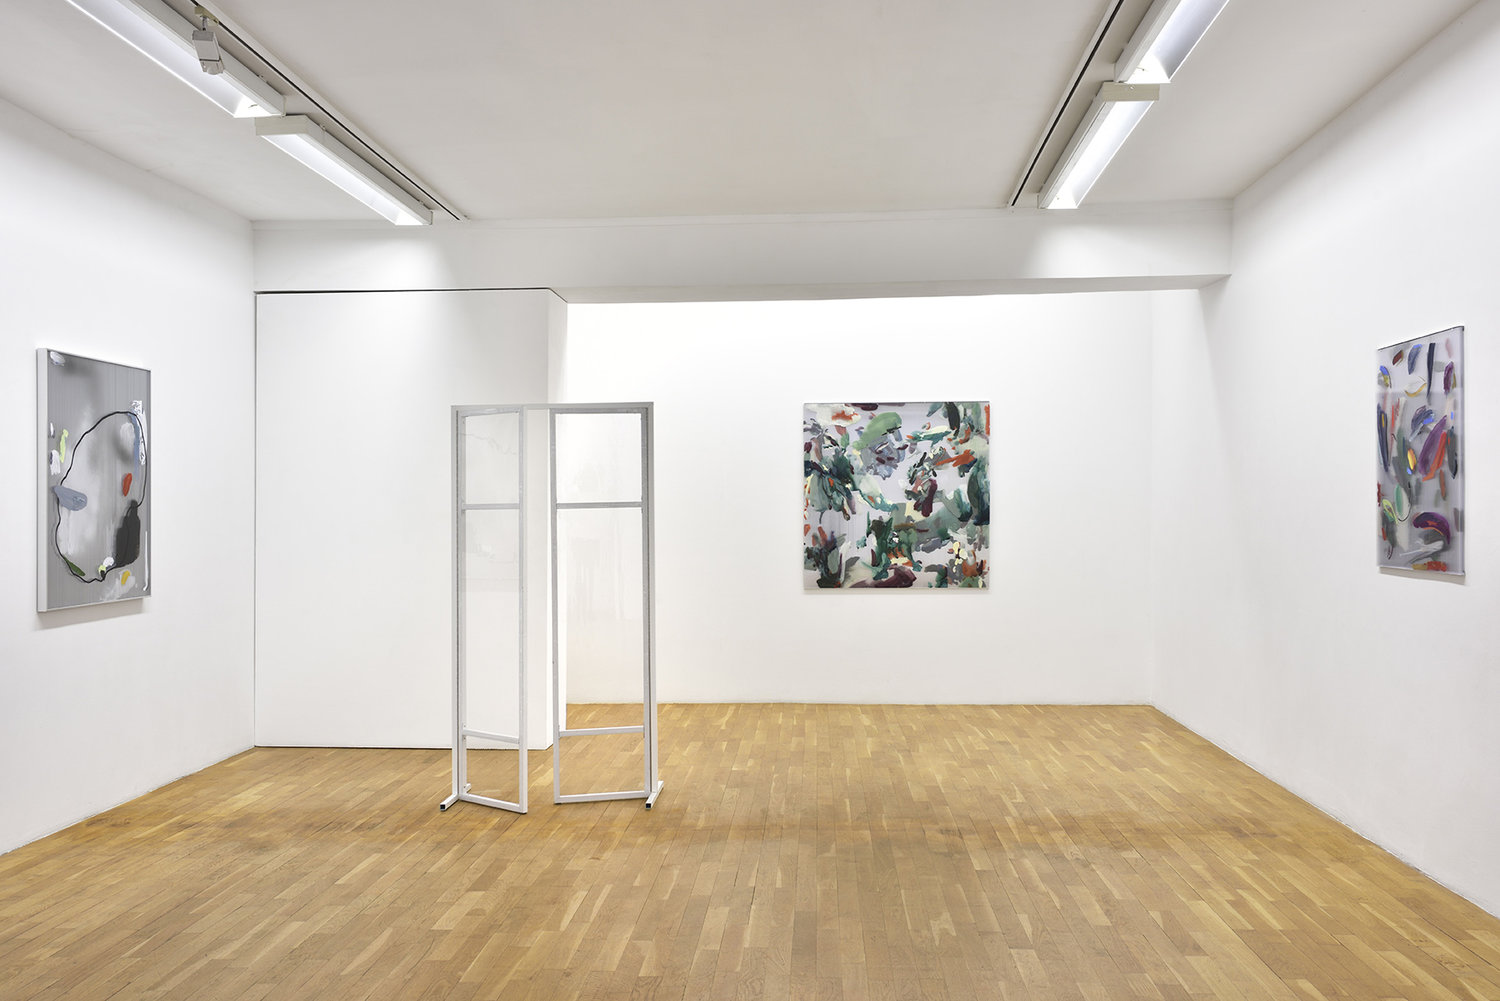 GALERIE ISABELLE GOUNOD, 2019